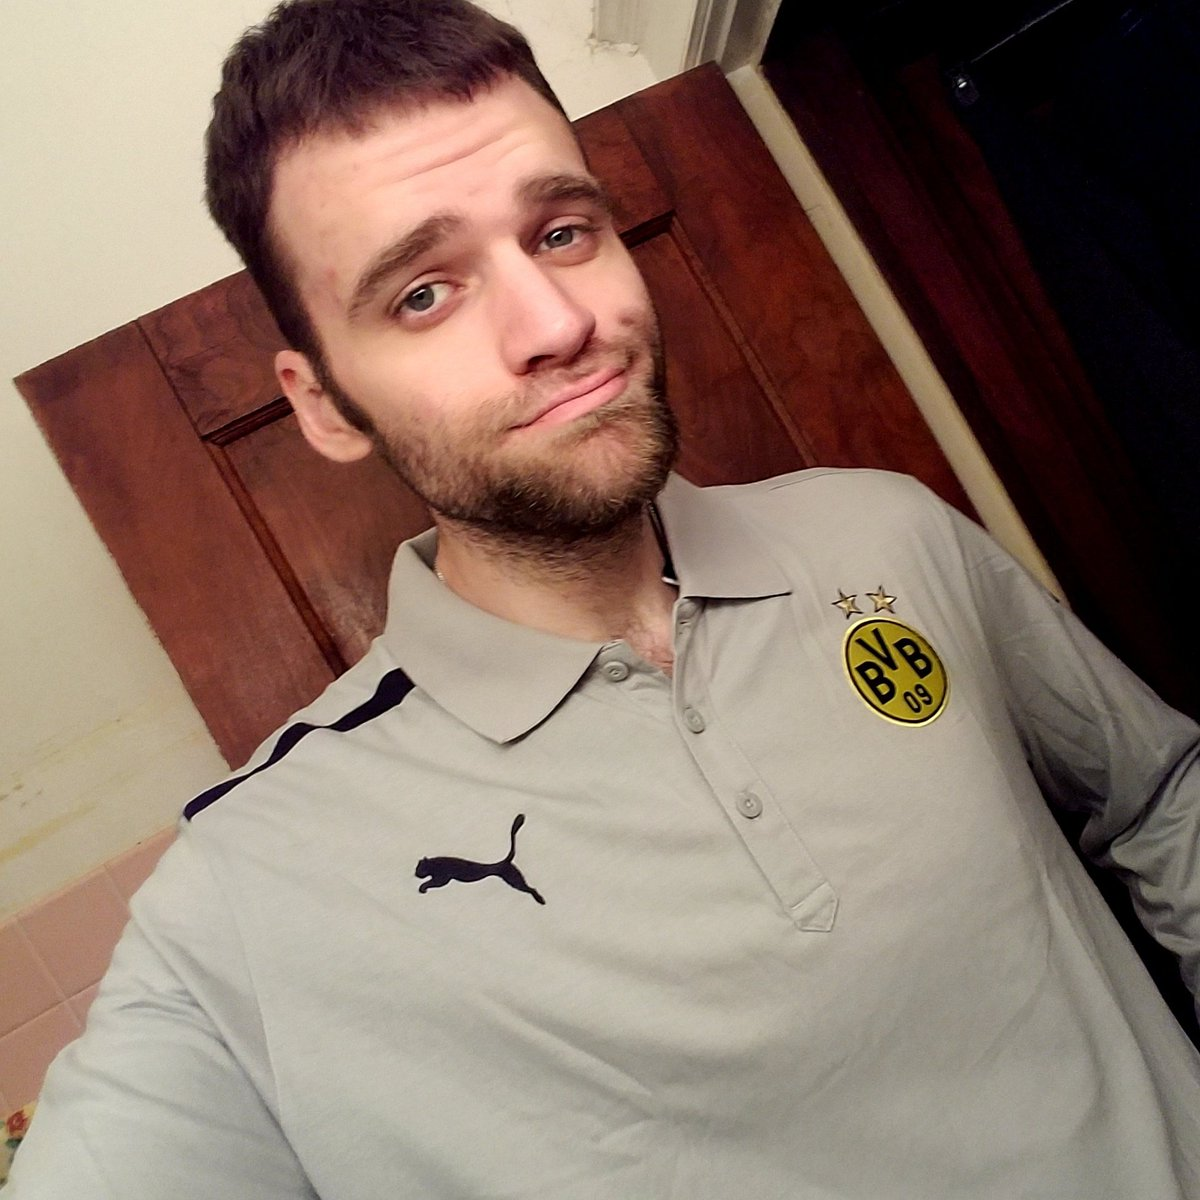 Thank you so much @classicshirts you&#39;re the best!!!  #bvb #borussiadortmund #bvb09 #borussia #dortmund #hejabvb #echteliebe #ynwa<br>http://pic.twitter.com/zveAA5c0Lj